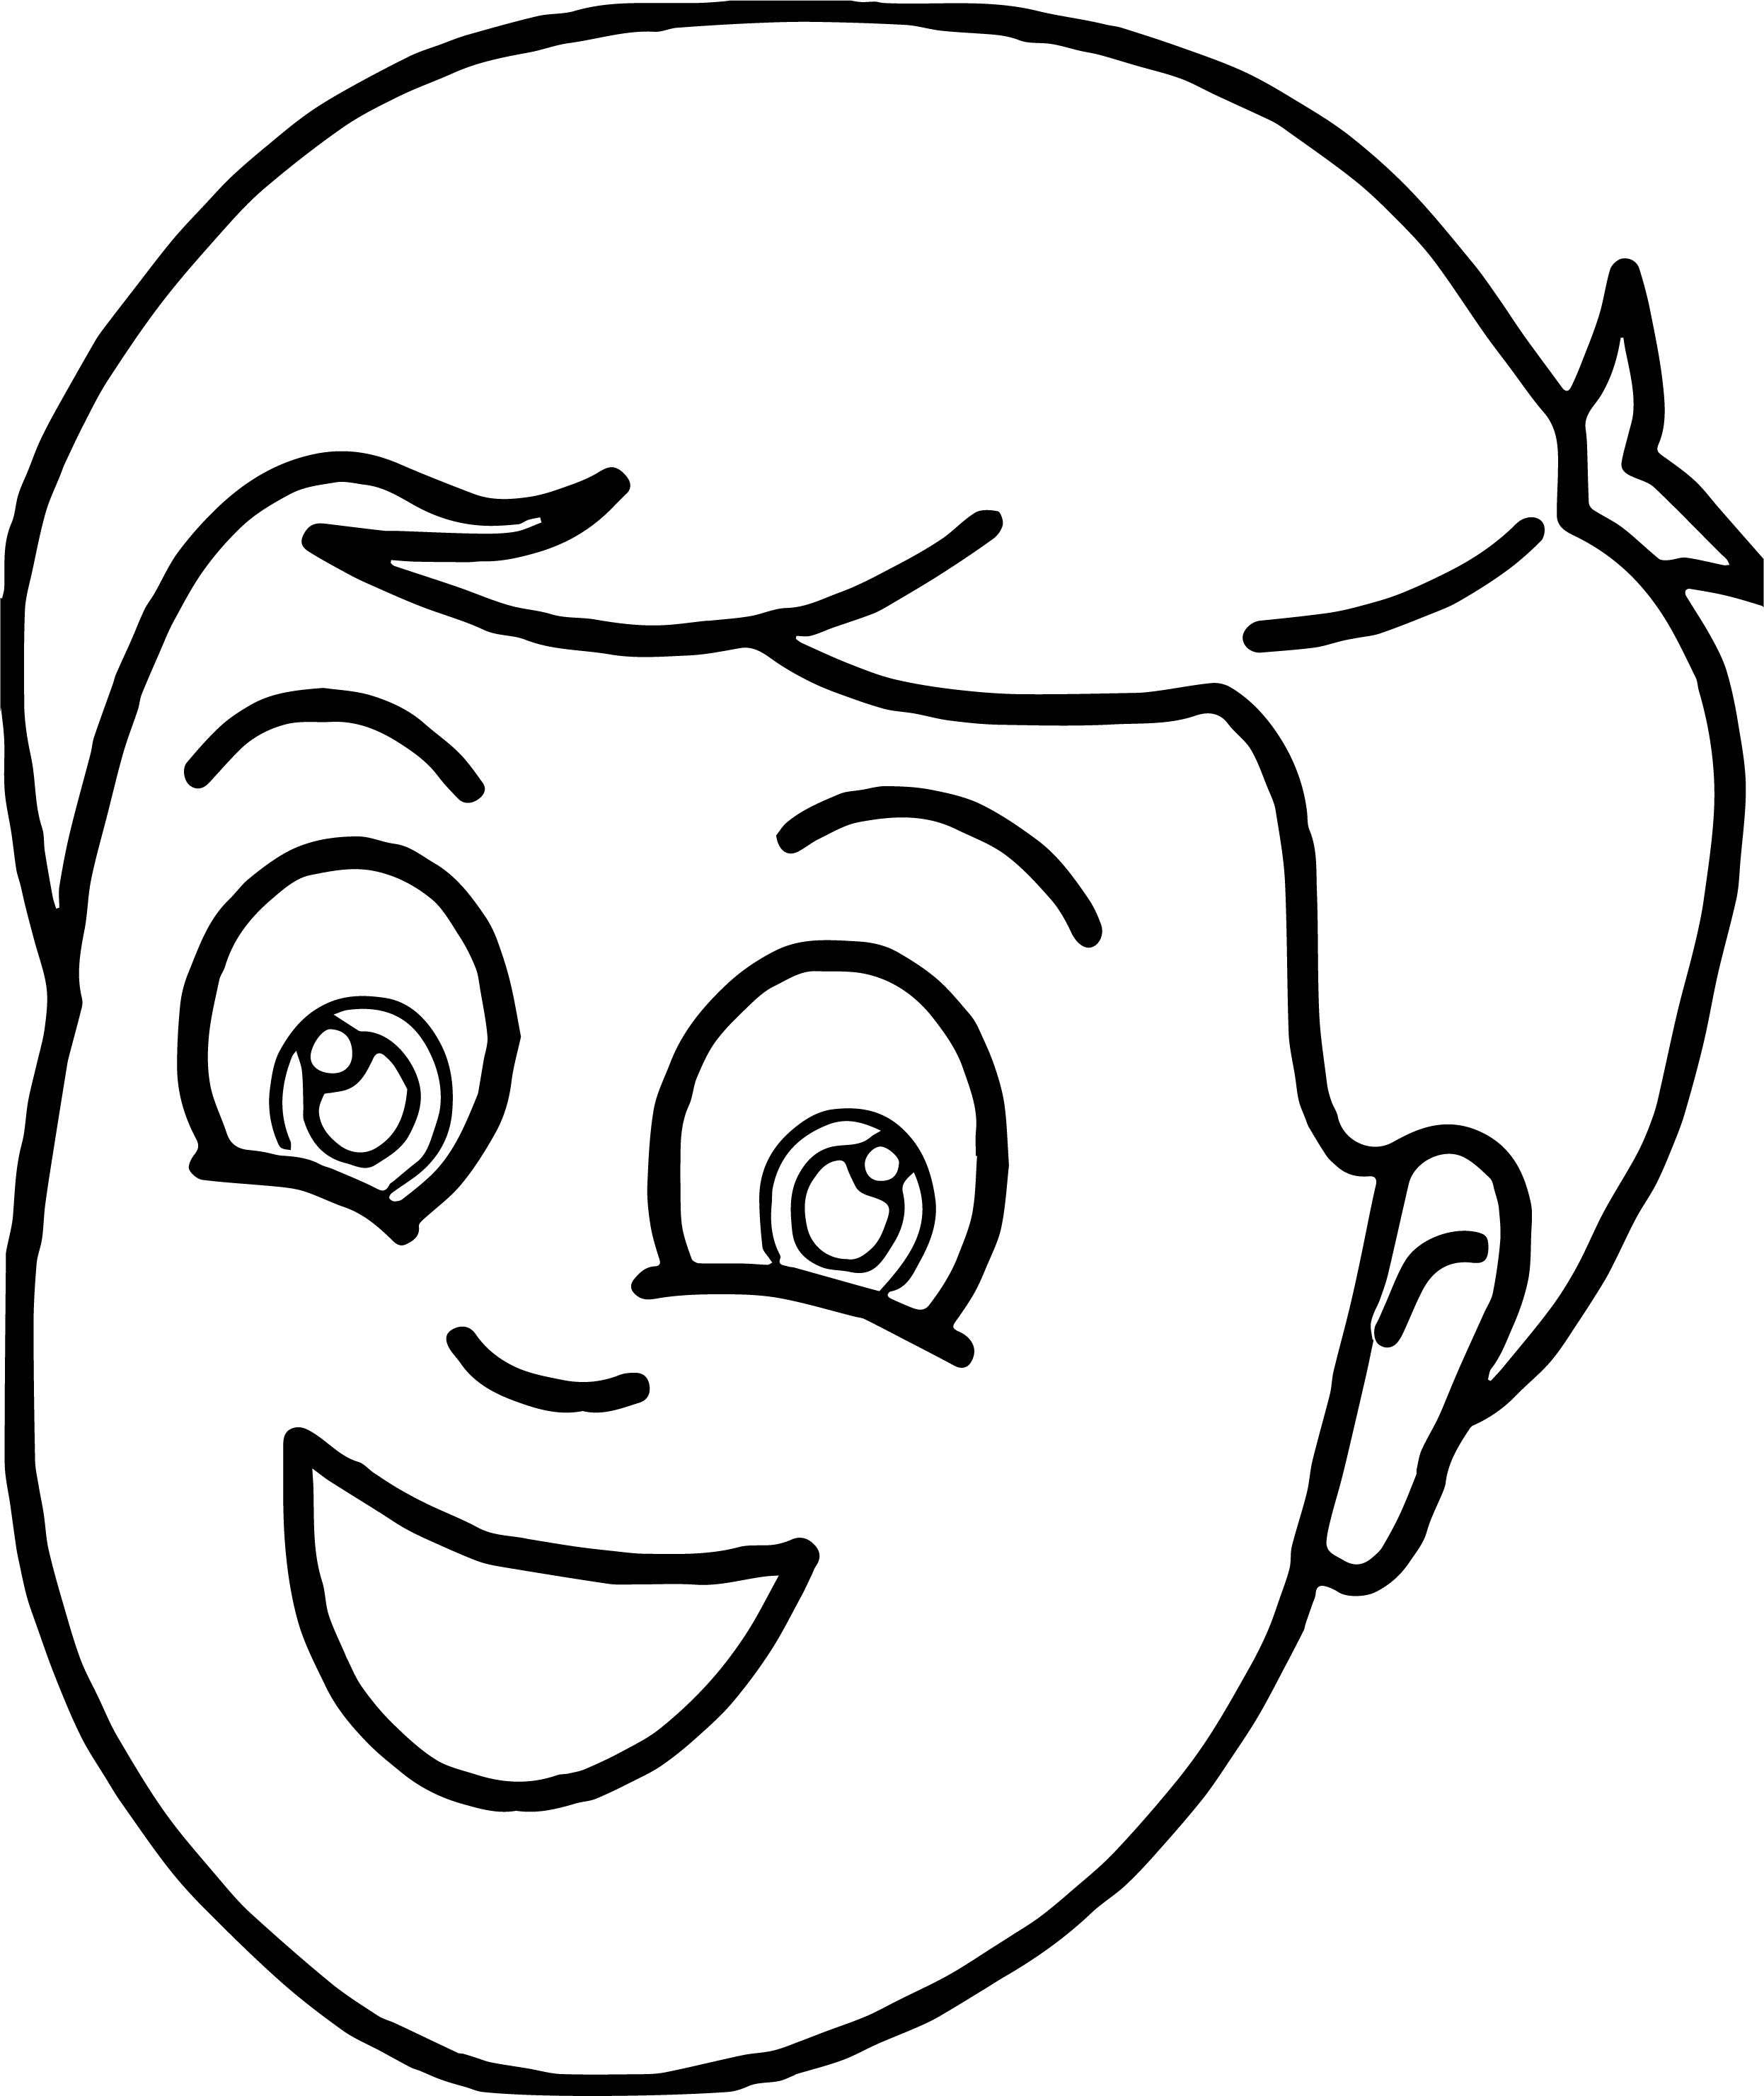 Tn Boy Smiling Face Coloring Page